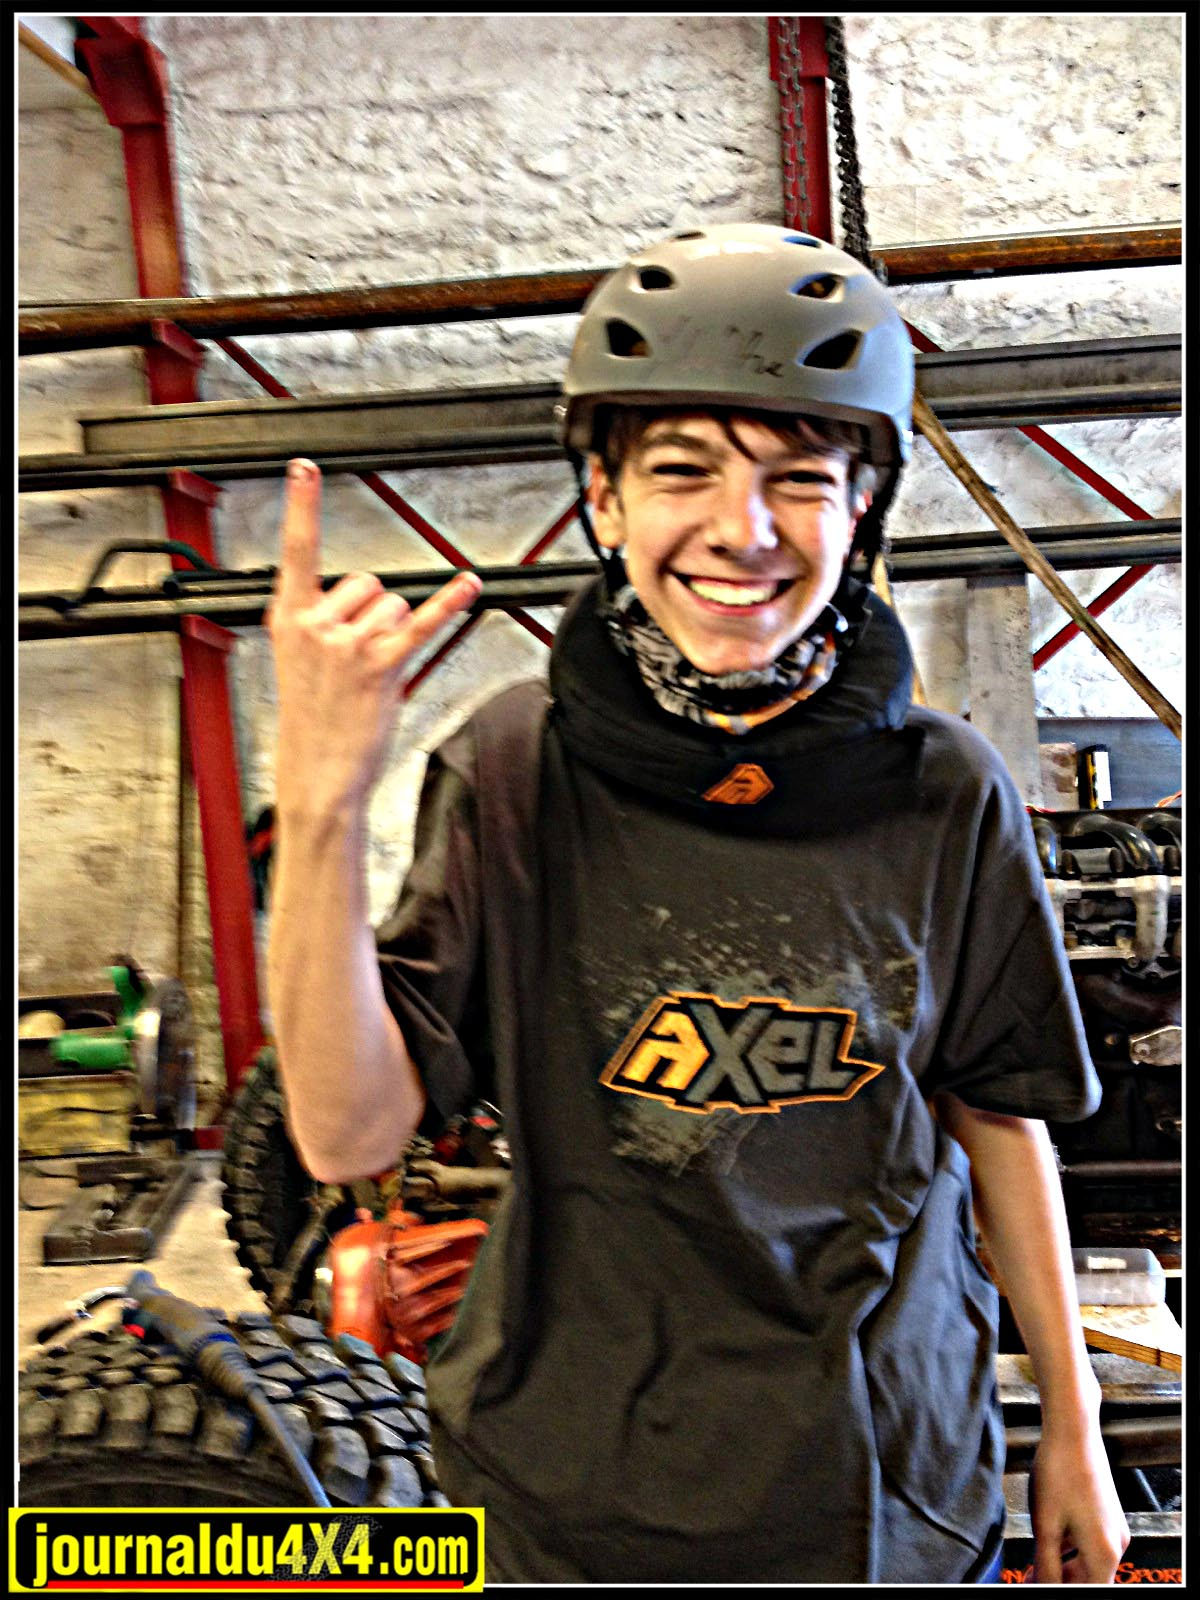 Axel Off Road Gear